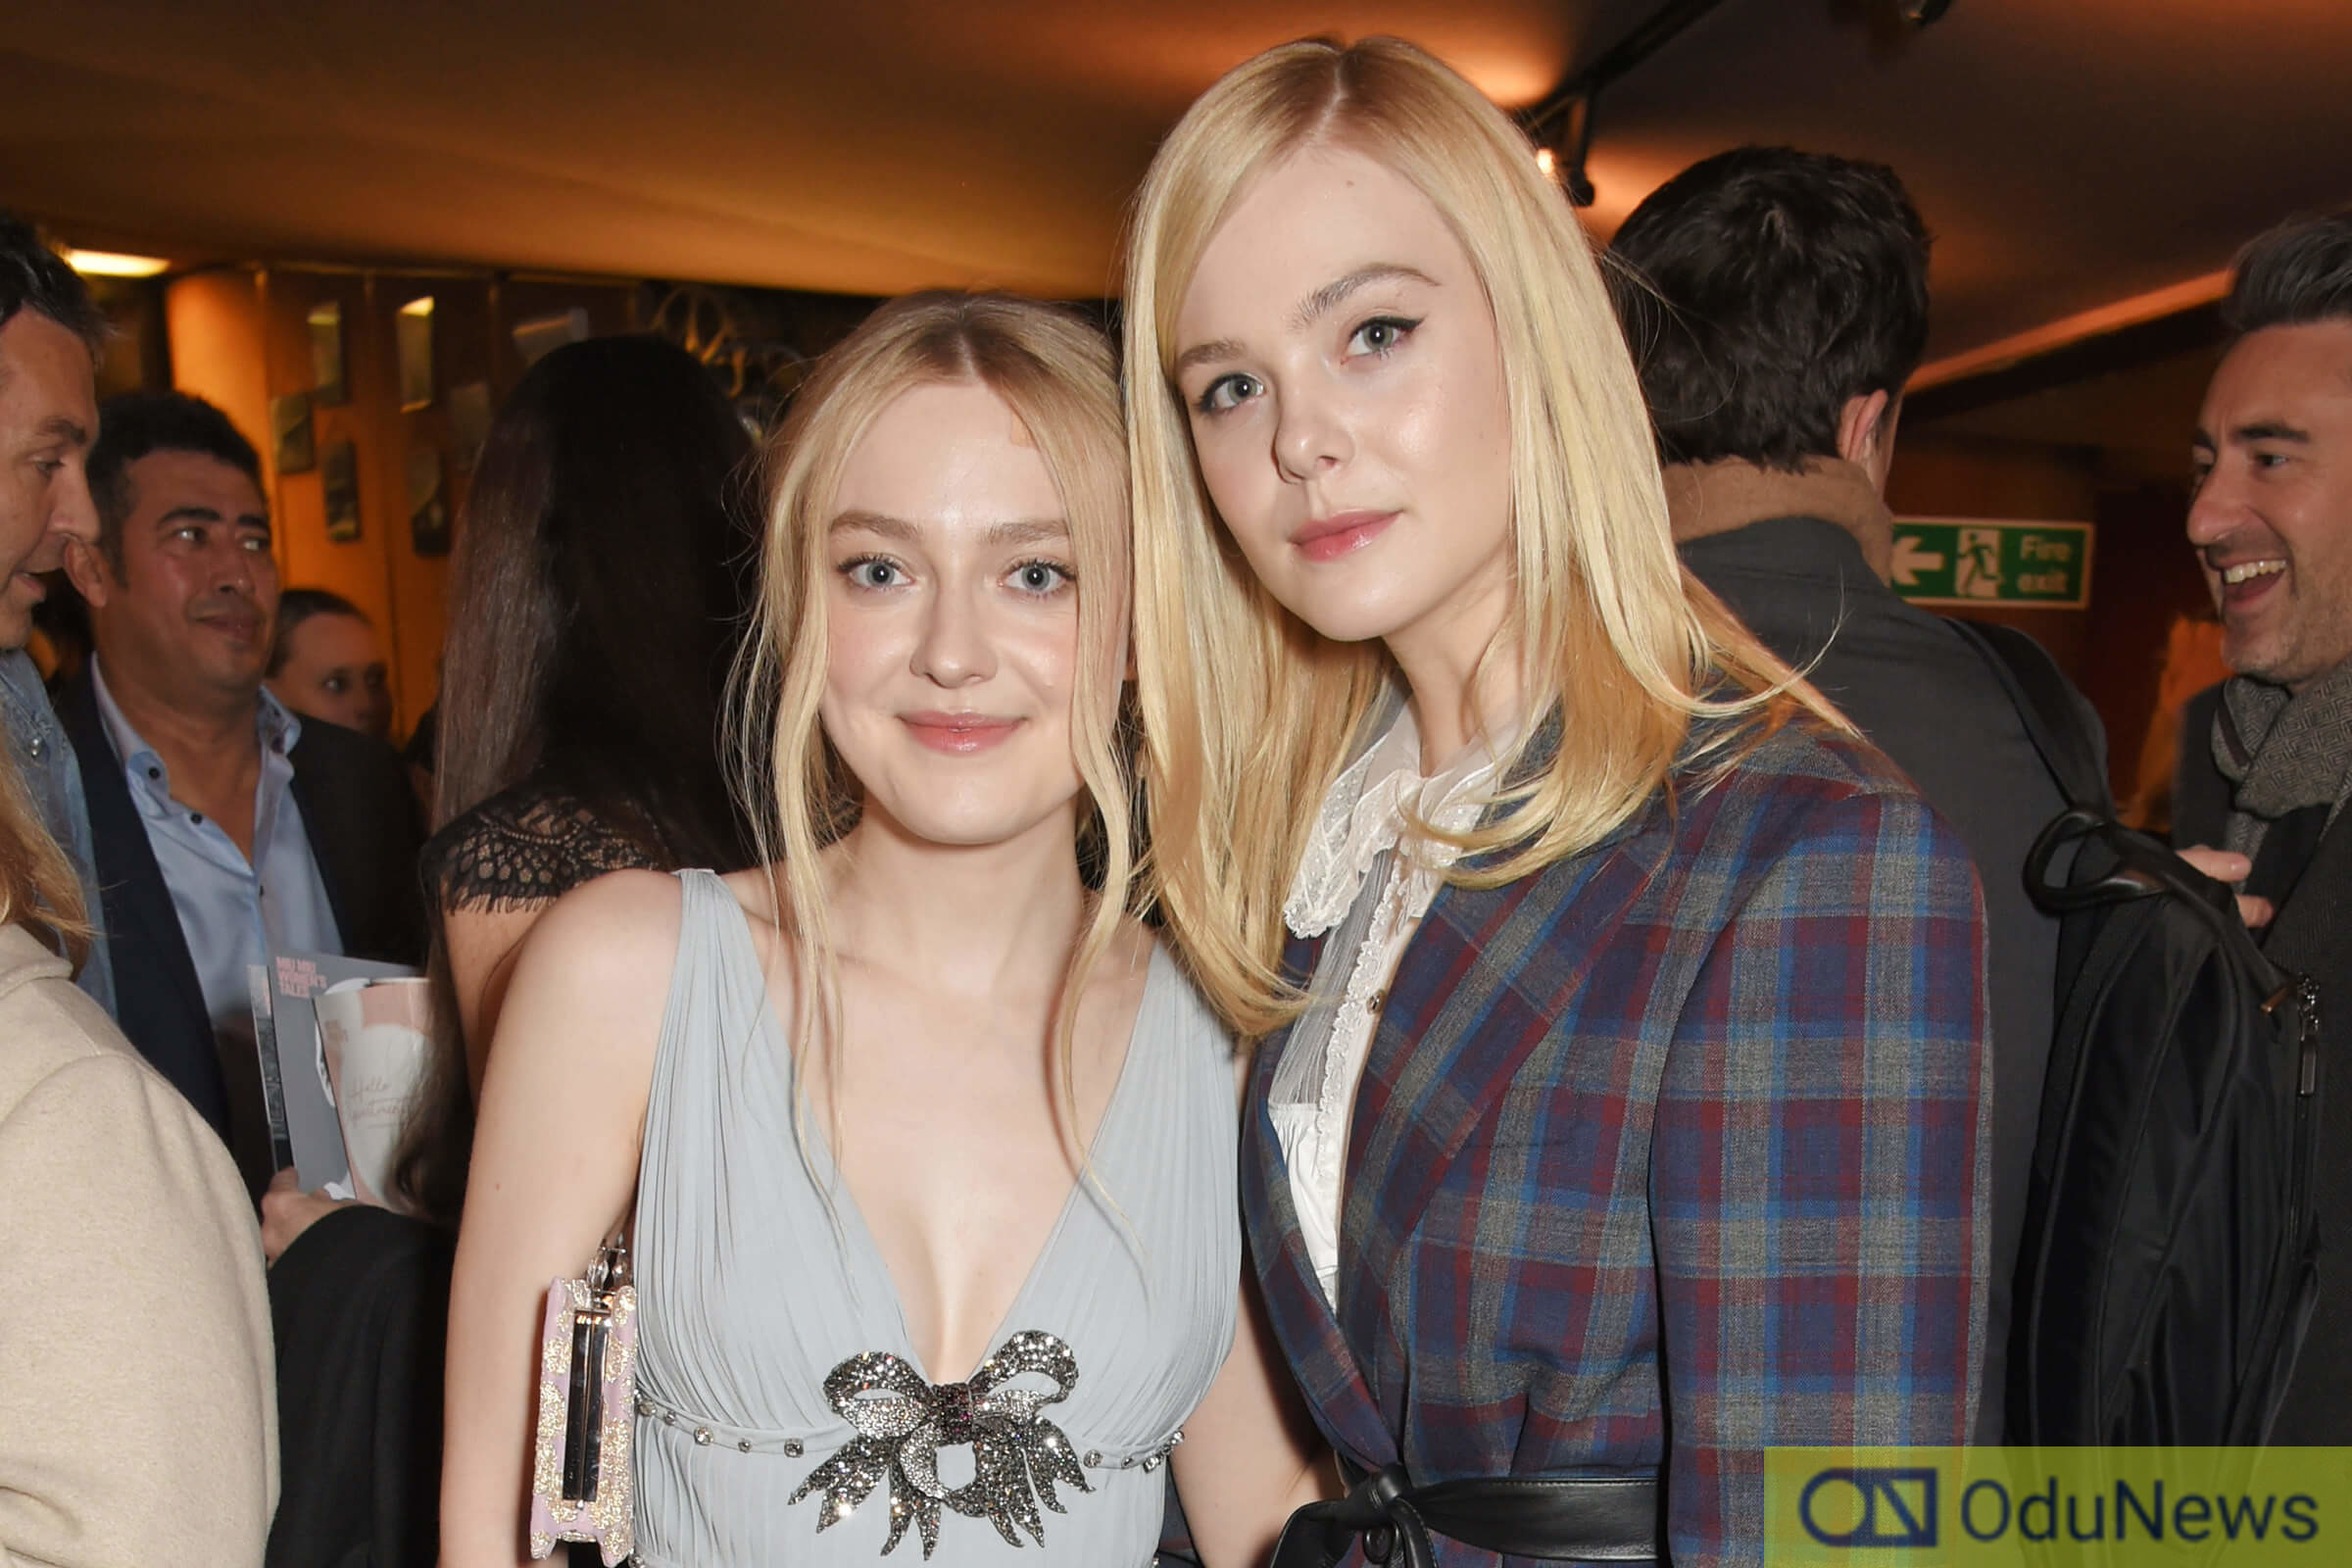 Dakota and Elle Fanning have been acting since they were little